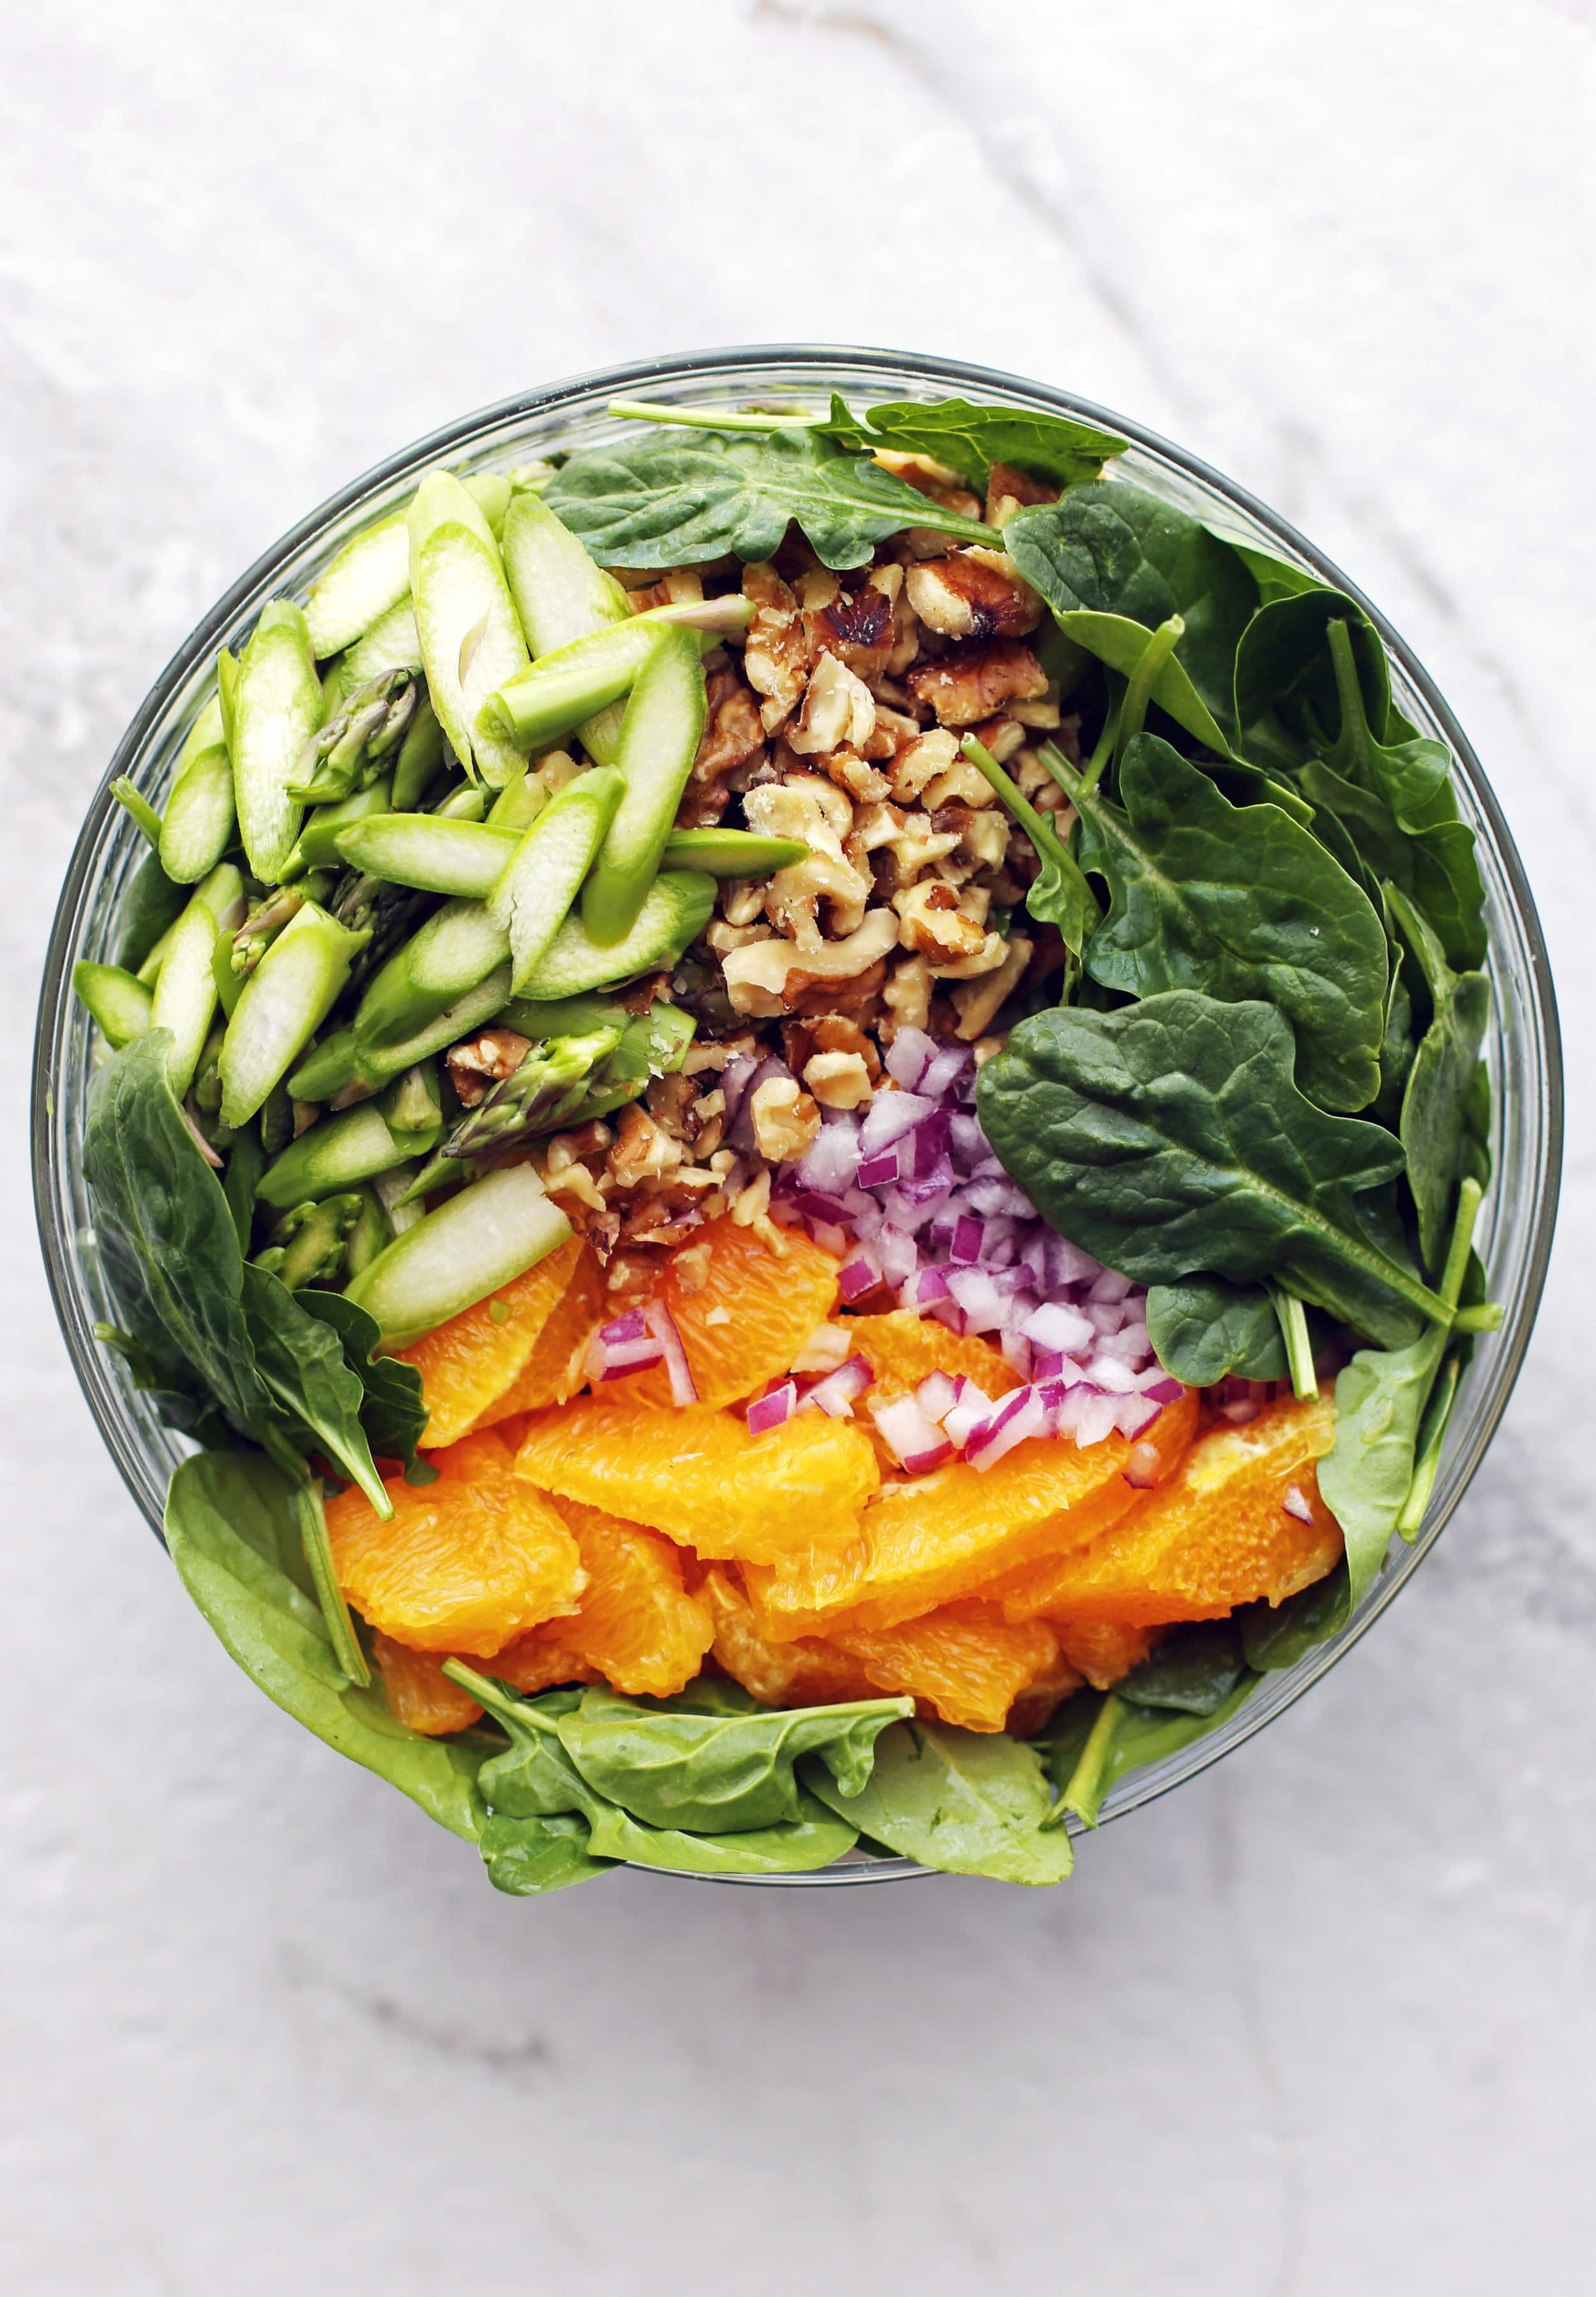 A glass bowl full of asparagus, spinach, orange, red onion, avocado, and walnuts.